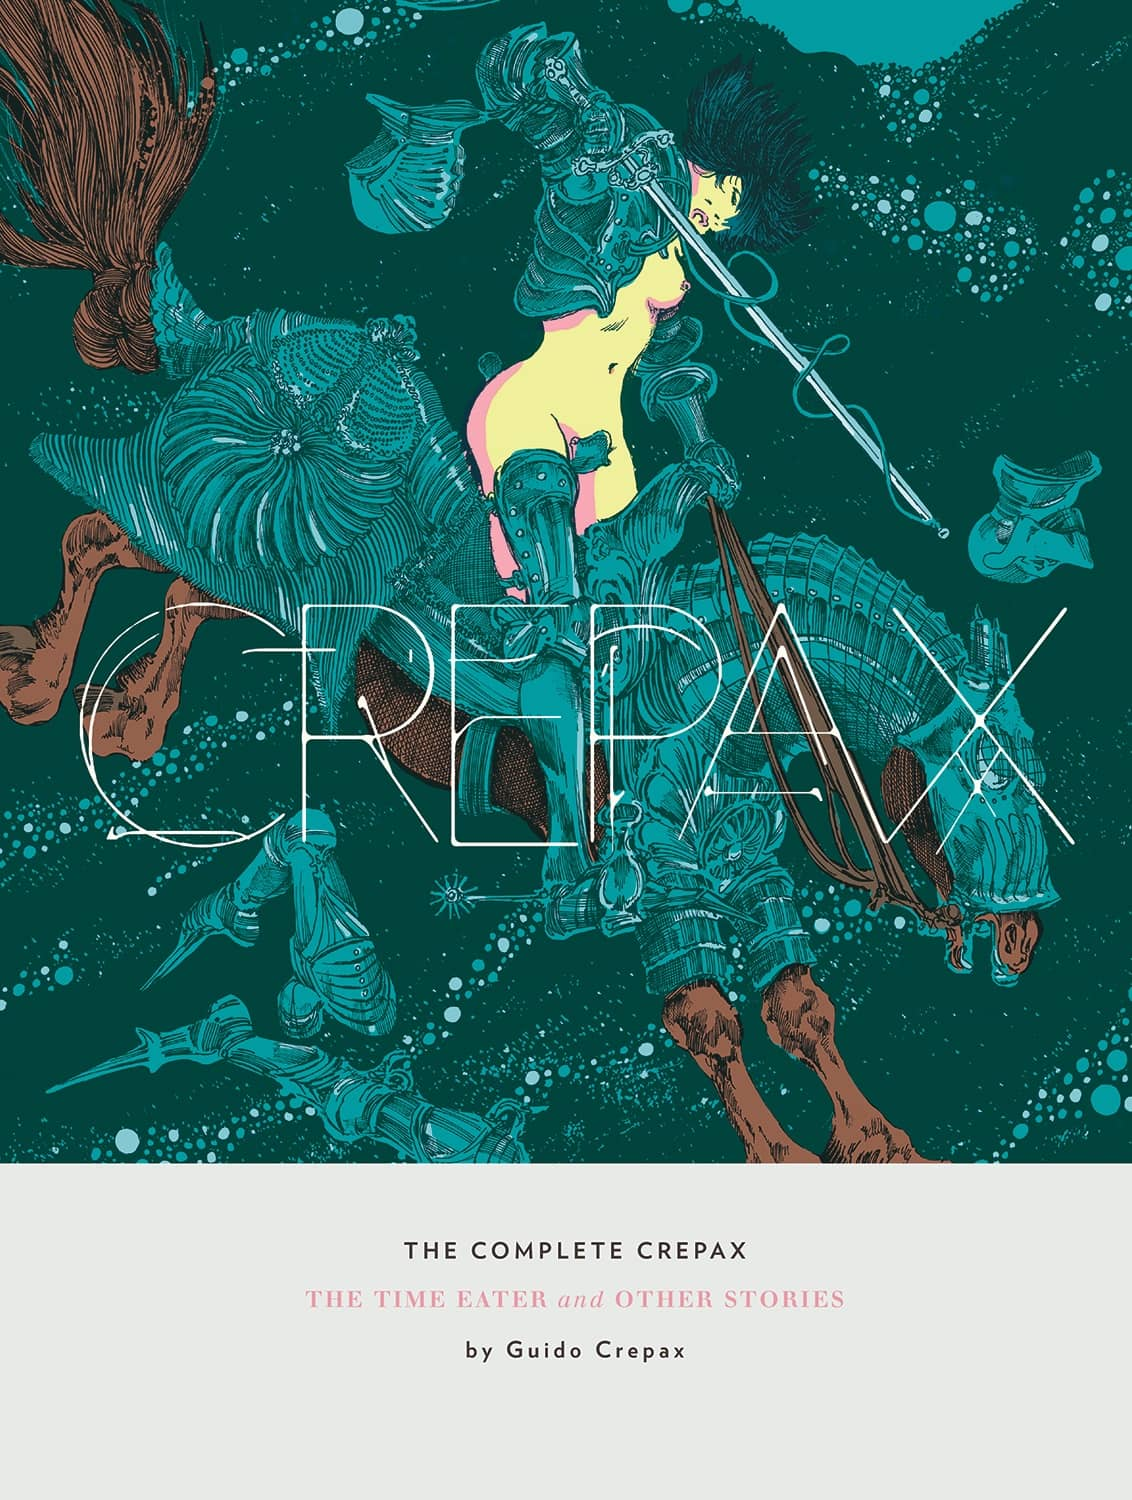 Complete Crepax: The Time Eaters And Other Stories